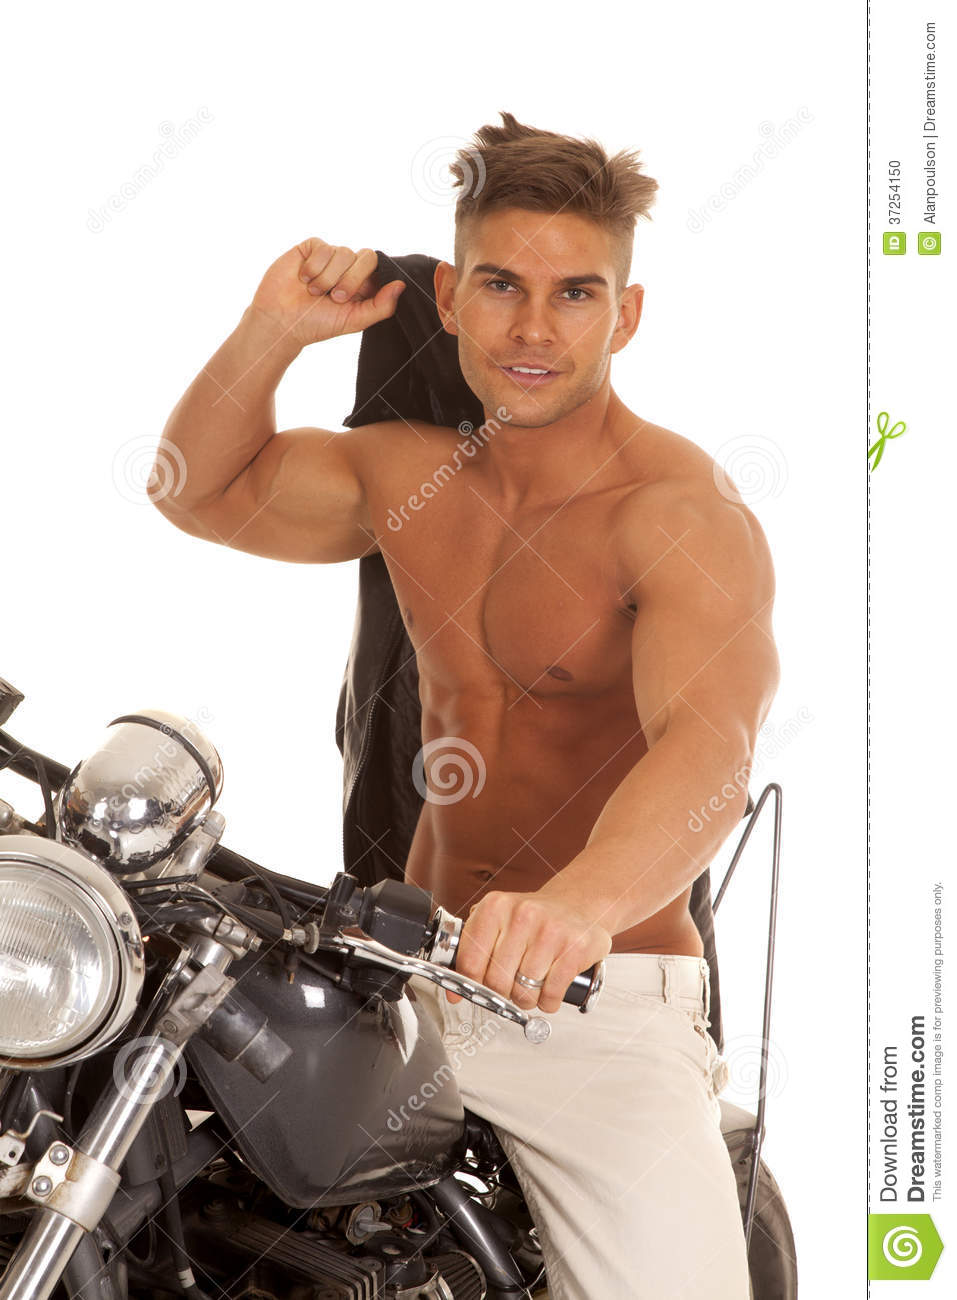 Man No Shirt Jacket Over Shoulder On Motorcycle Stock Photo Image